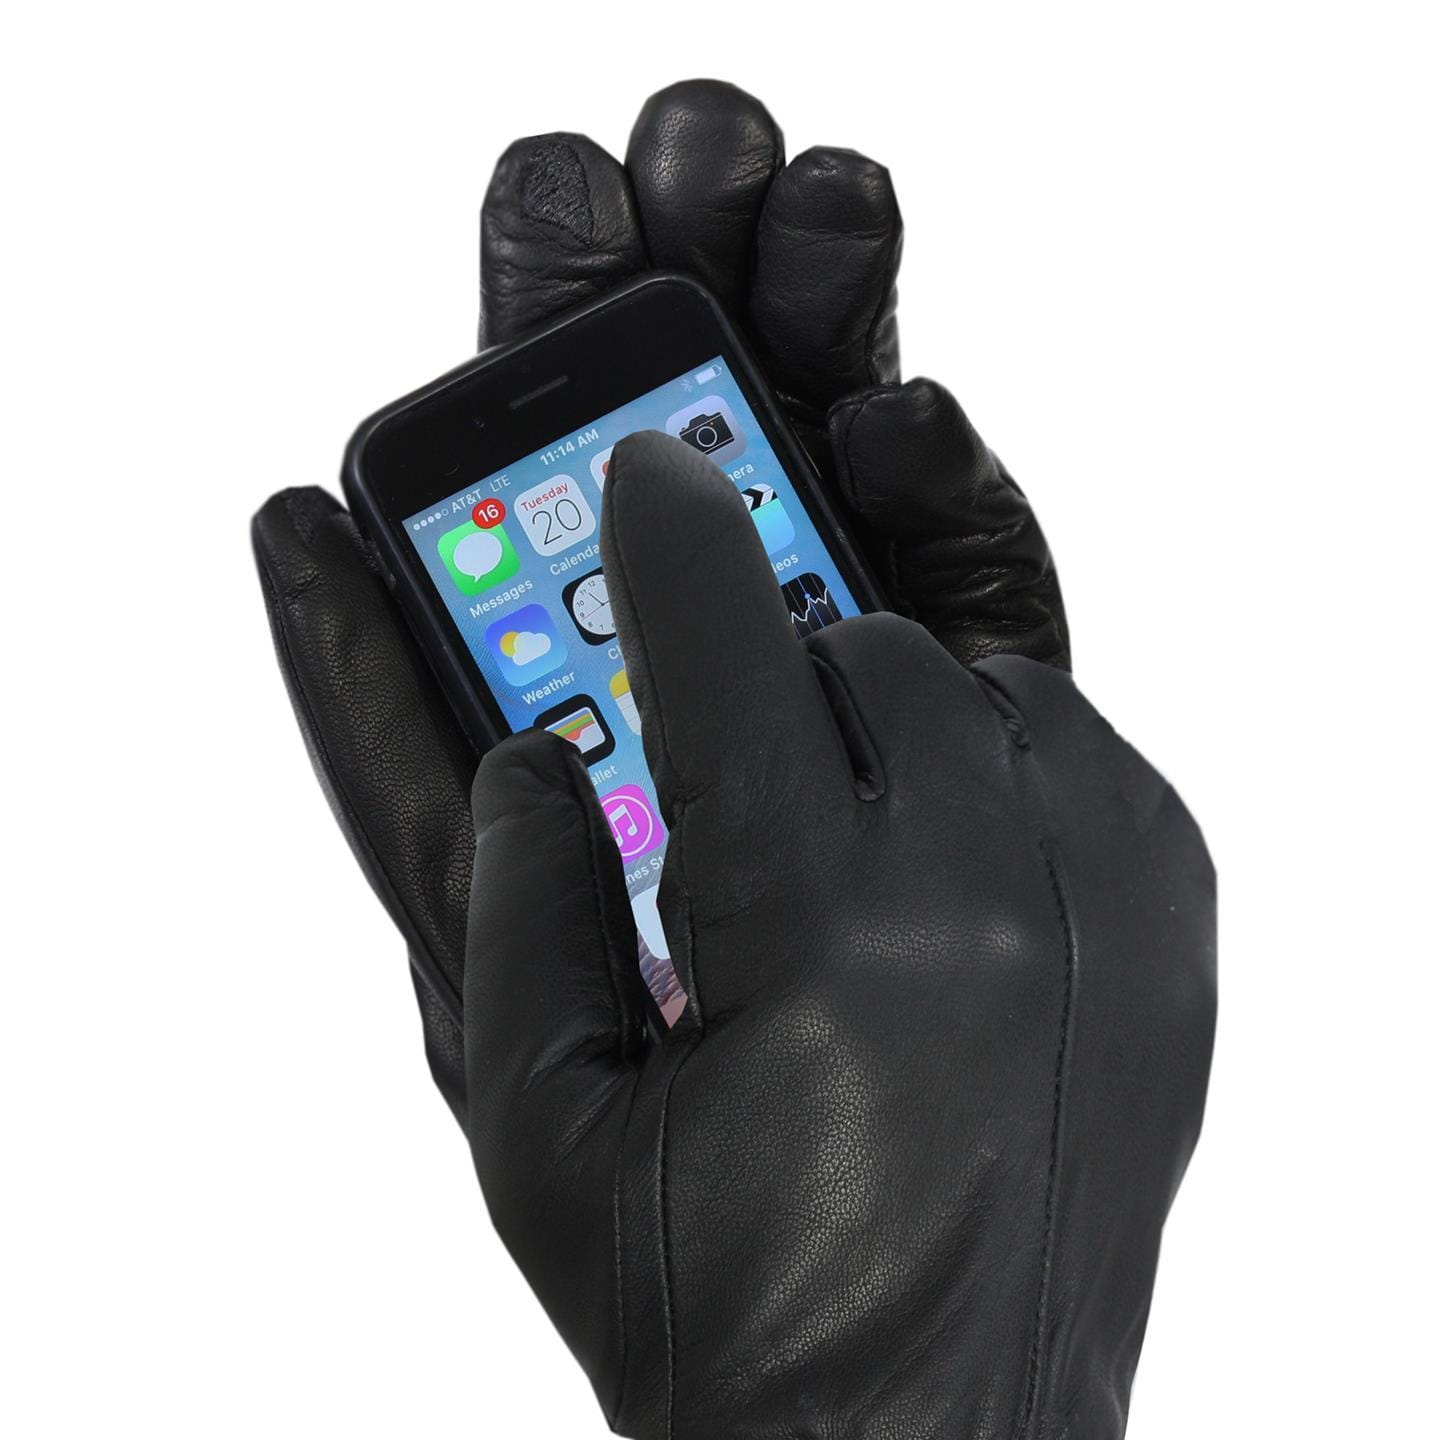 Isotoner Men's Black Leather Dress Gloves with Touchscree...